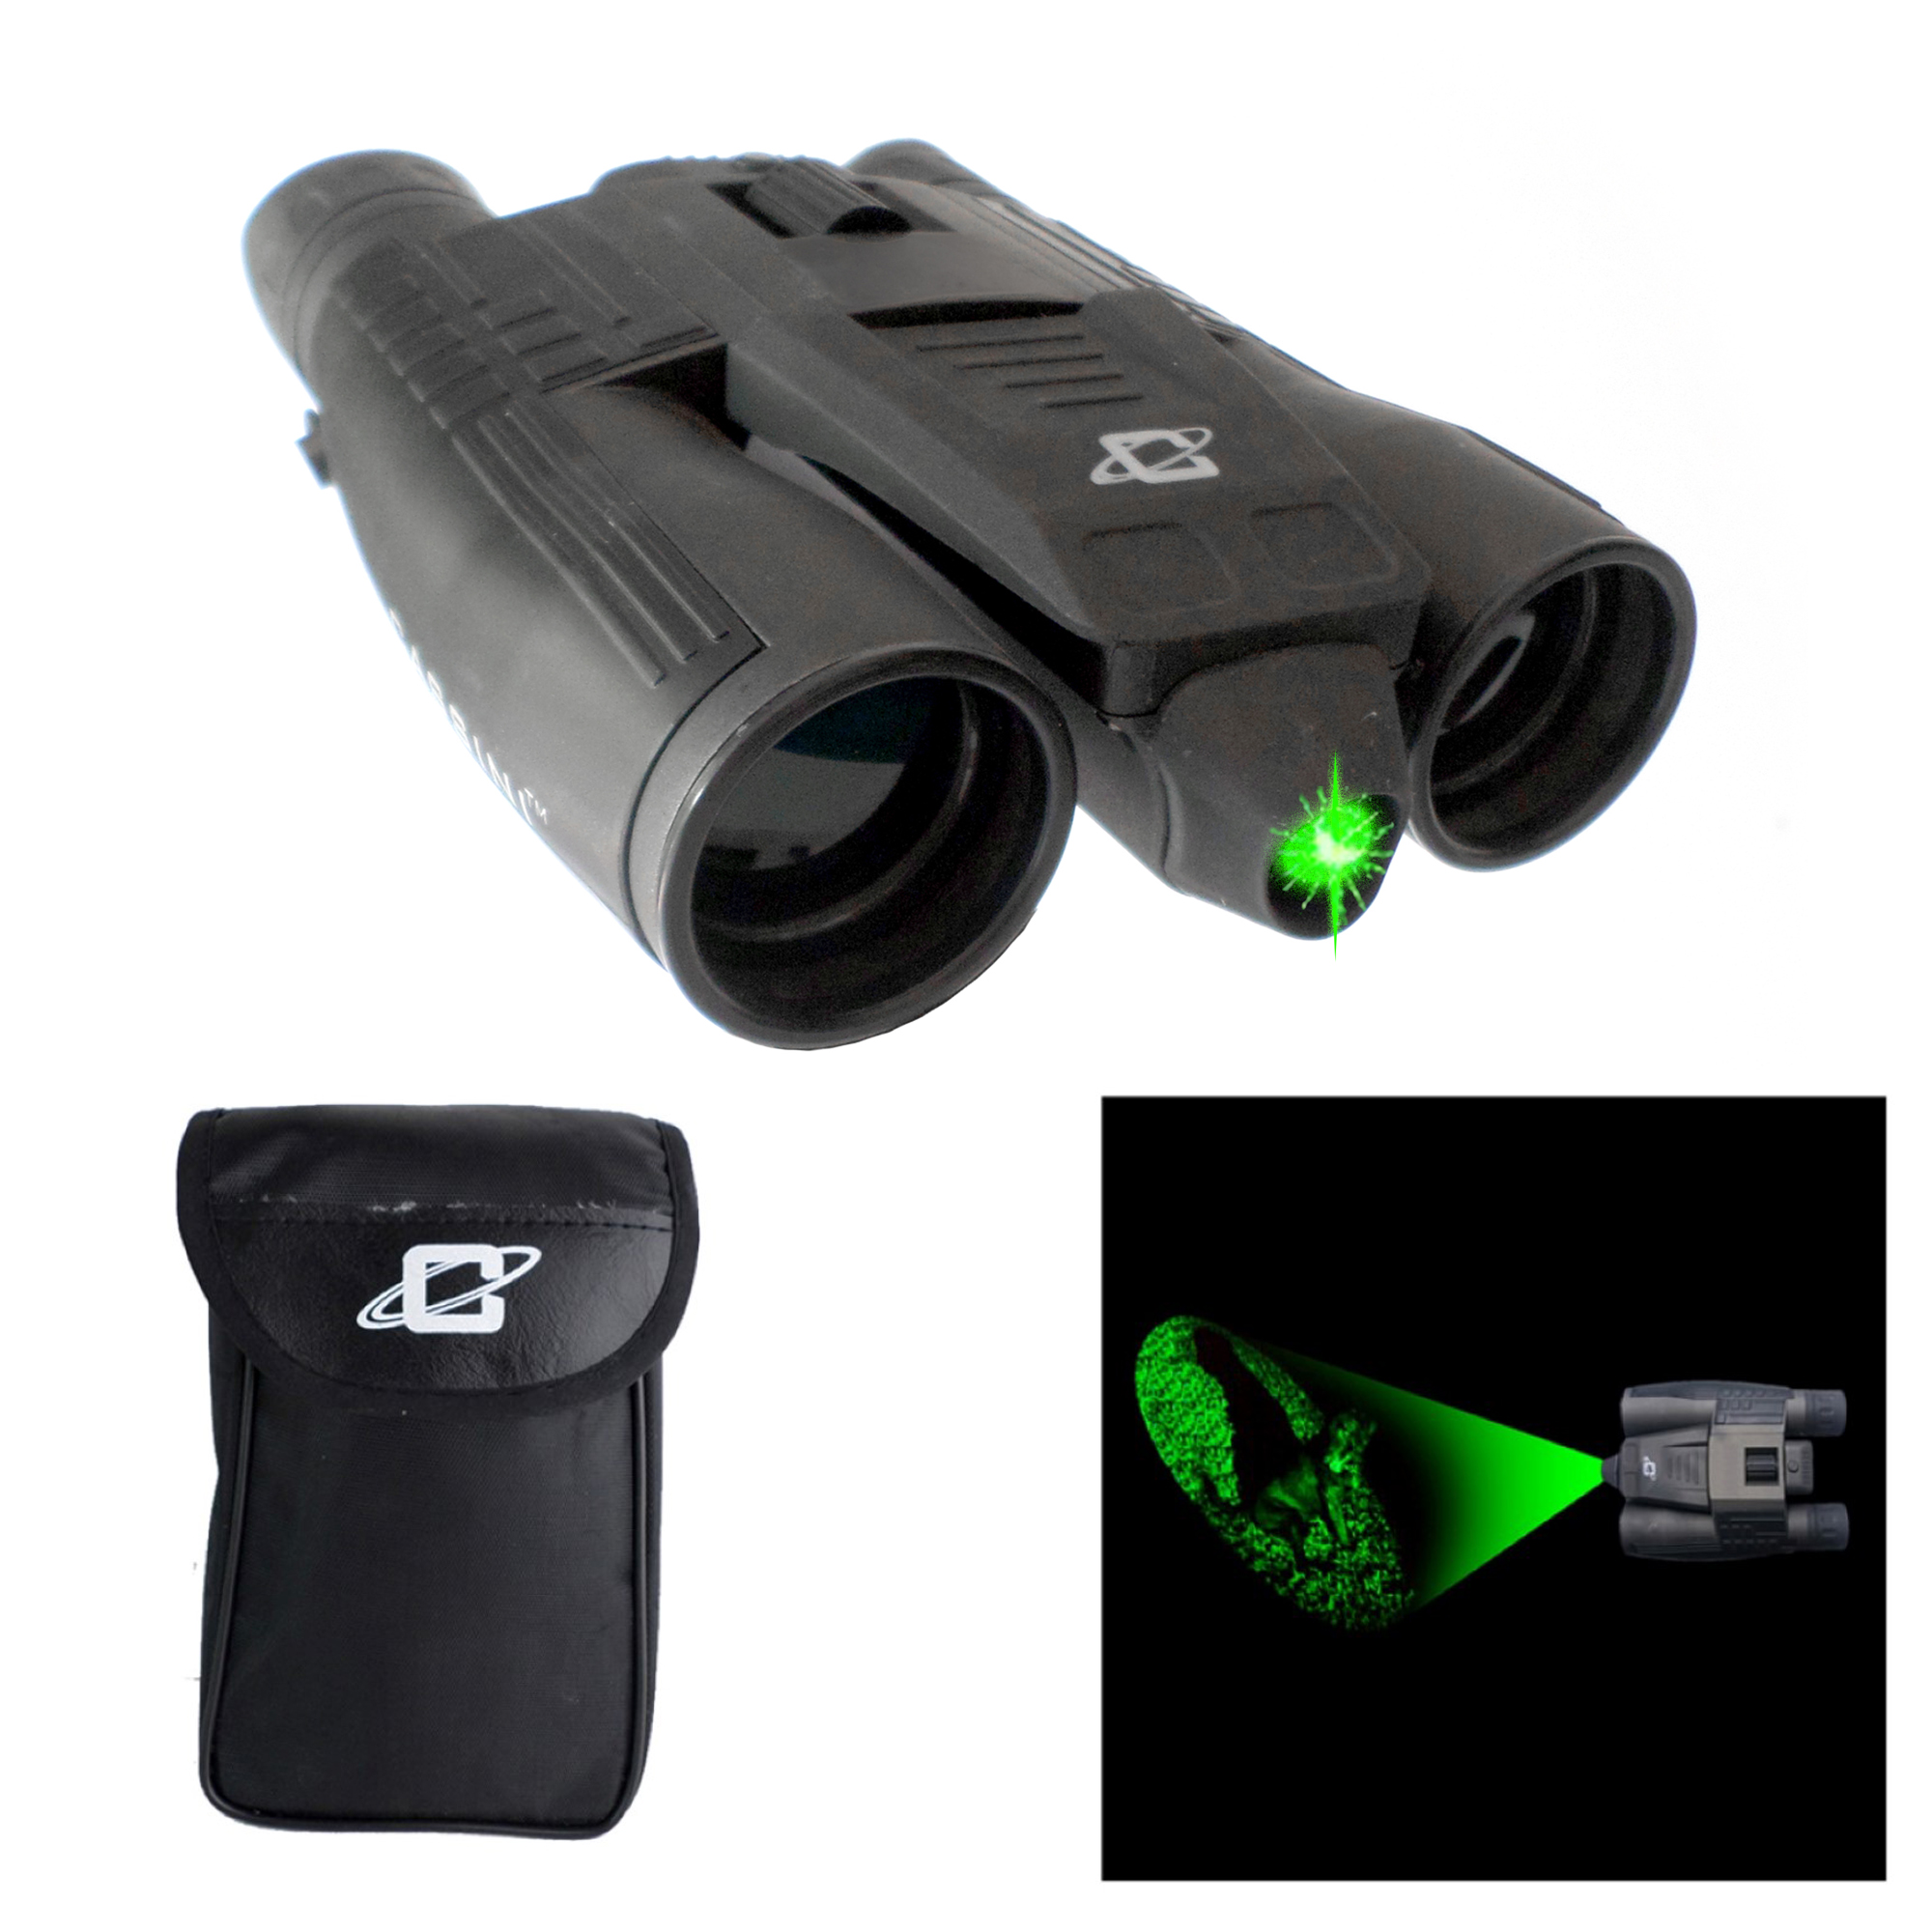 Cassini 10 x 32mm Binocular with K9 Green Laser beam for Day and Night viewing. Tripod Port and Case